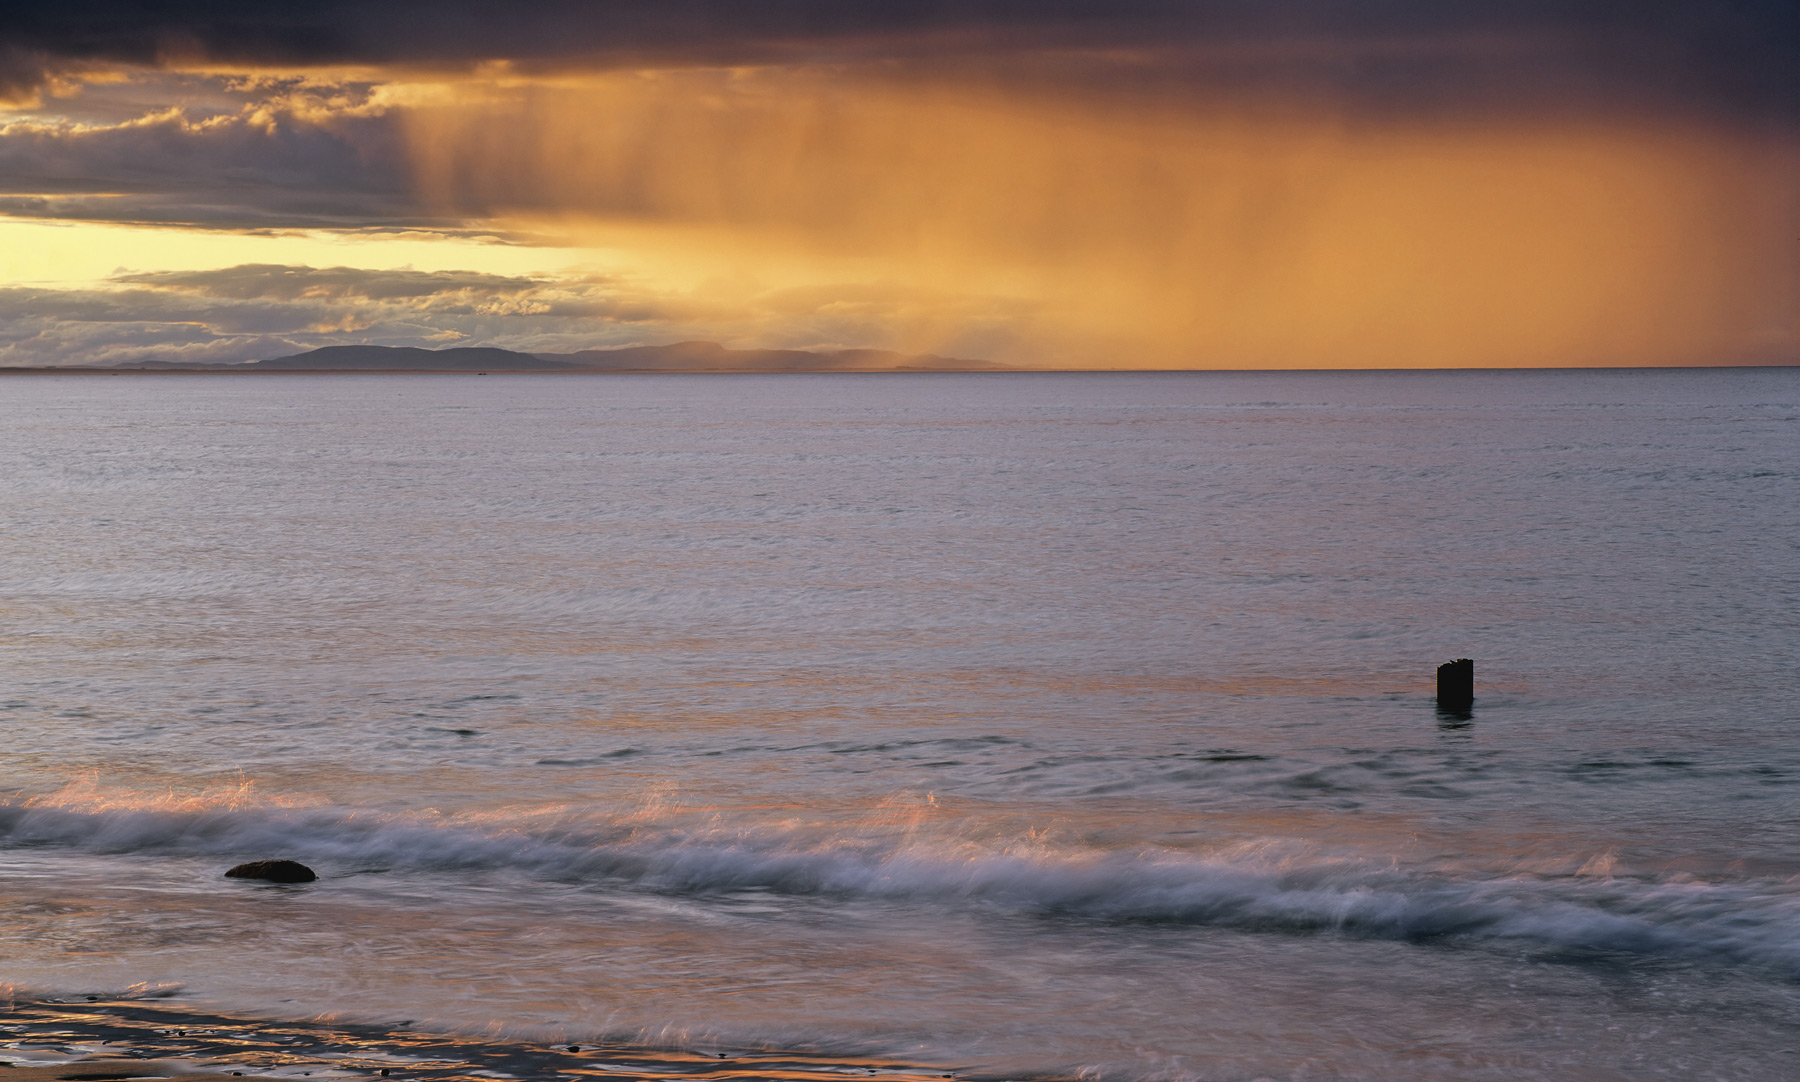 On one of my many wanderings down to Findhorn Bay at sunset I encountered heavy skies with a small break close to the horizon...